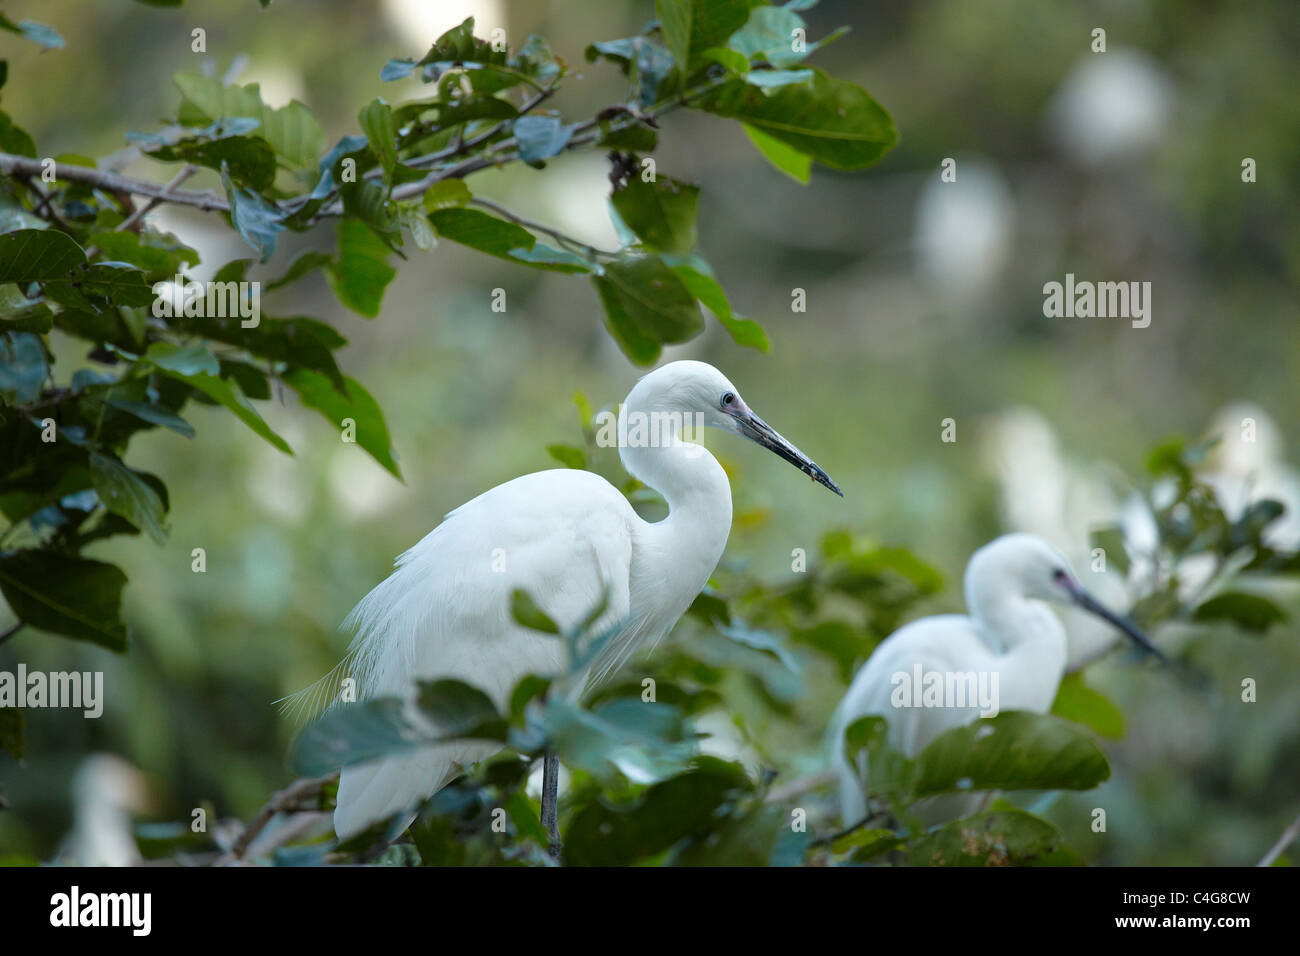 cranes in the trees nr Can Tho, Mekong Delta, Vietnam Stock Photo